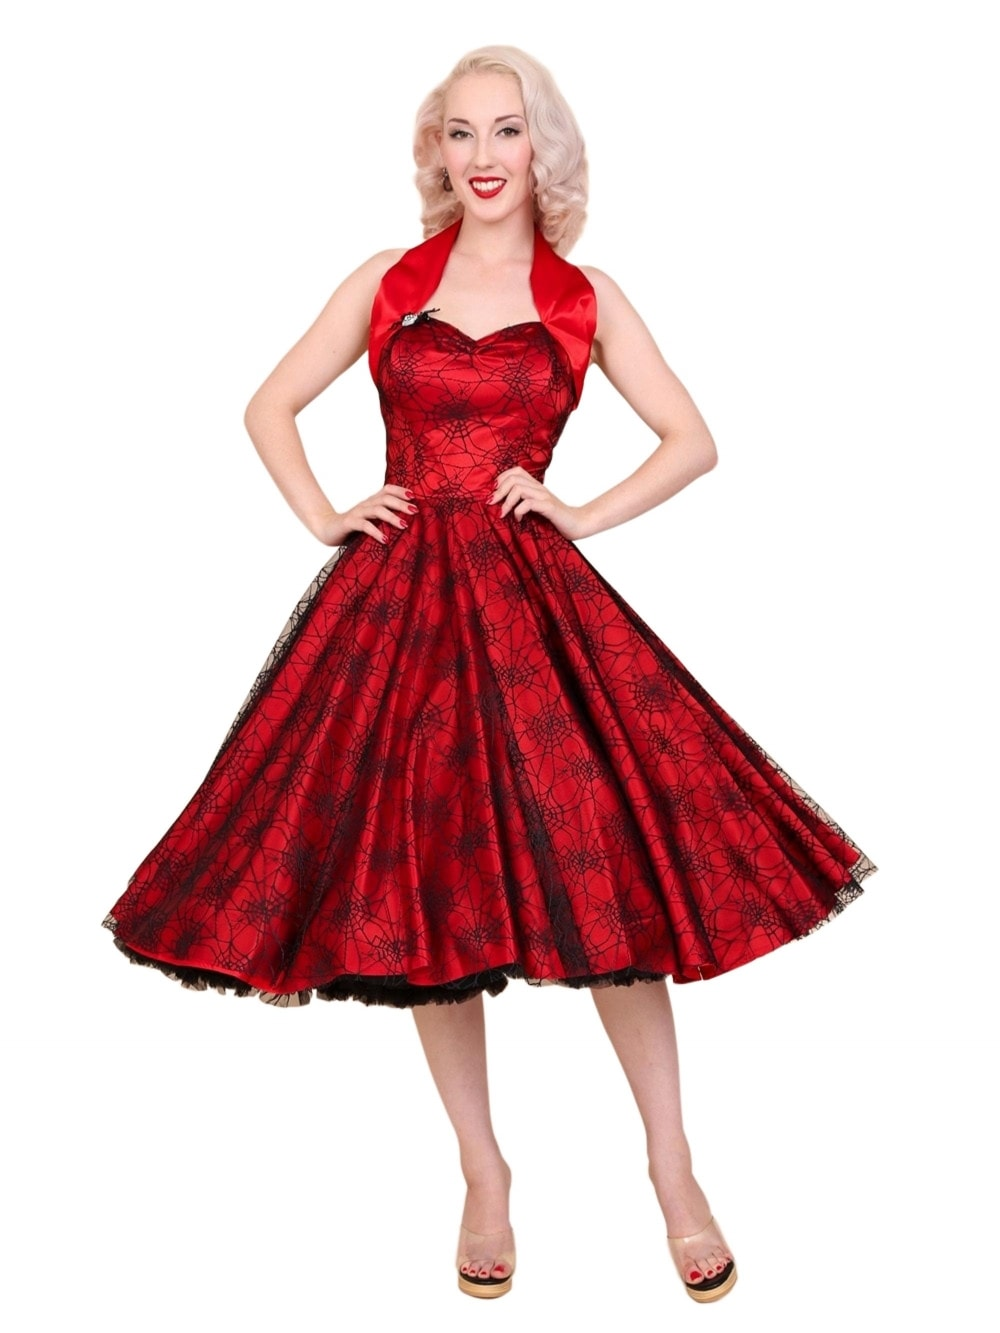 6da7aa97d9c 1950s Halterneck Luxury Red Satin Spiderweb Dress from Vivien of ...